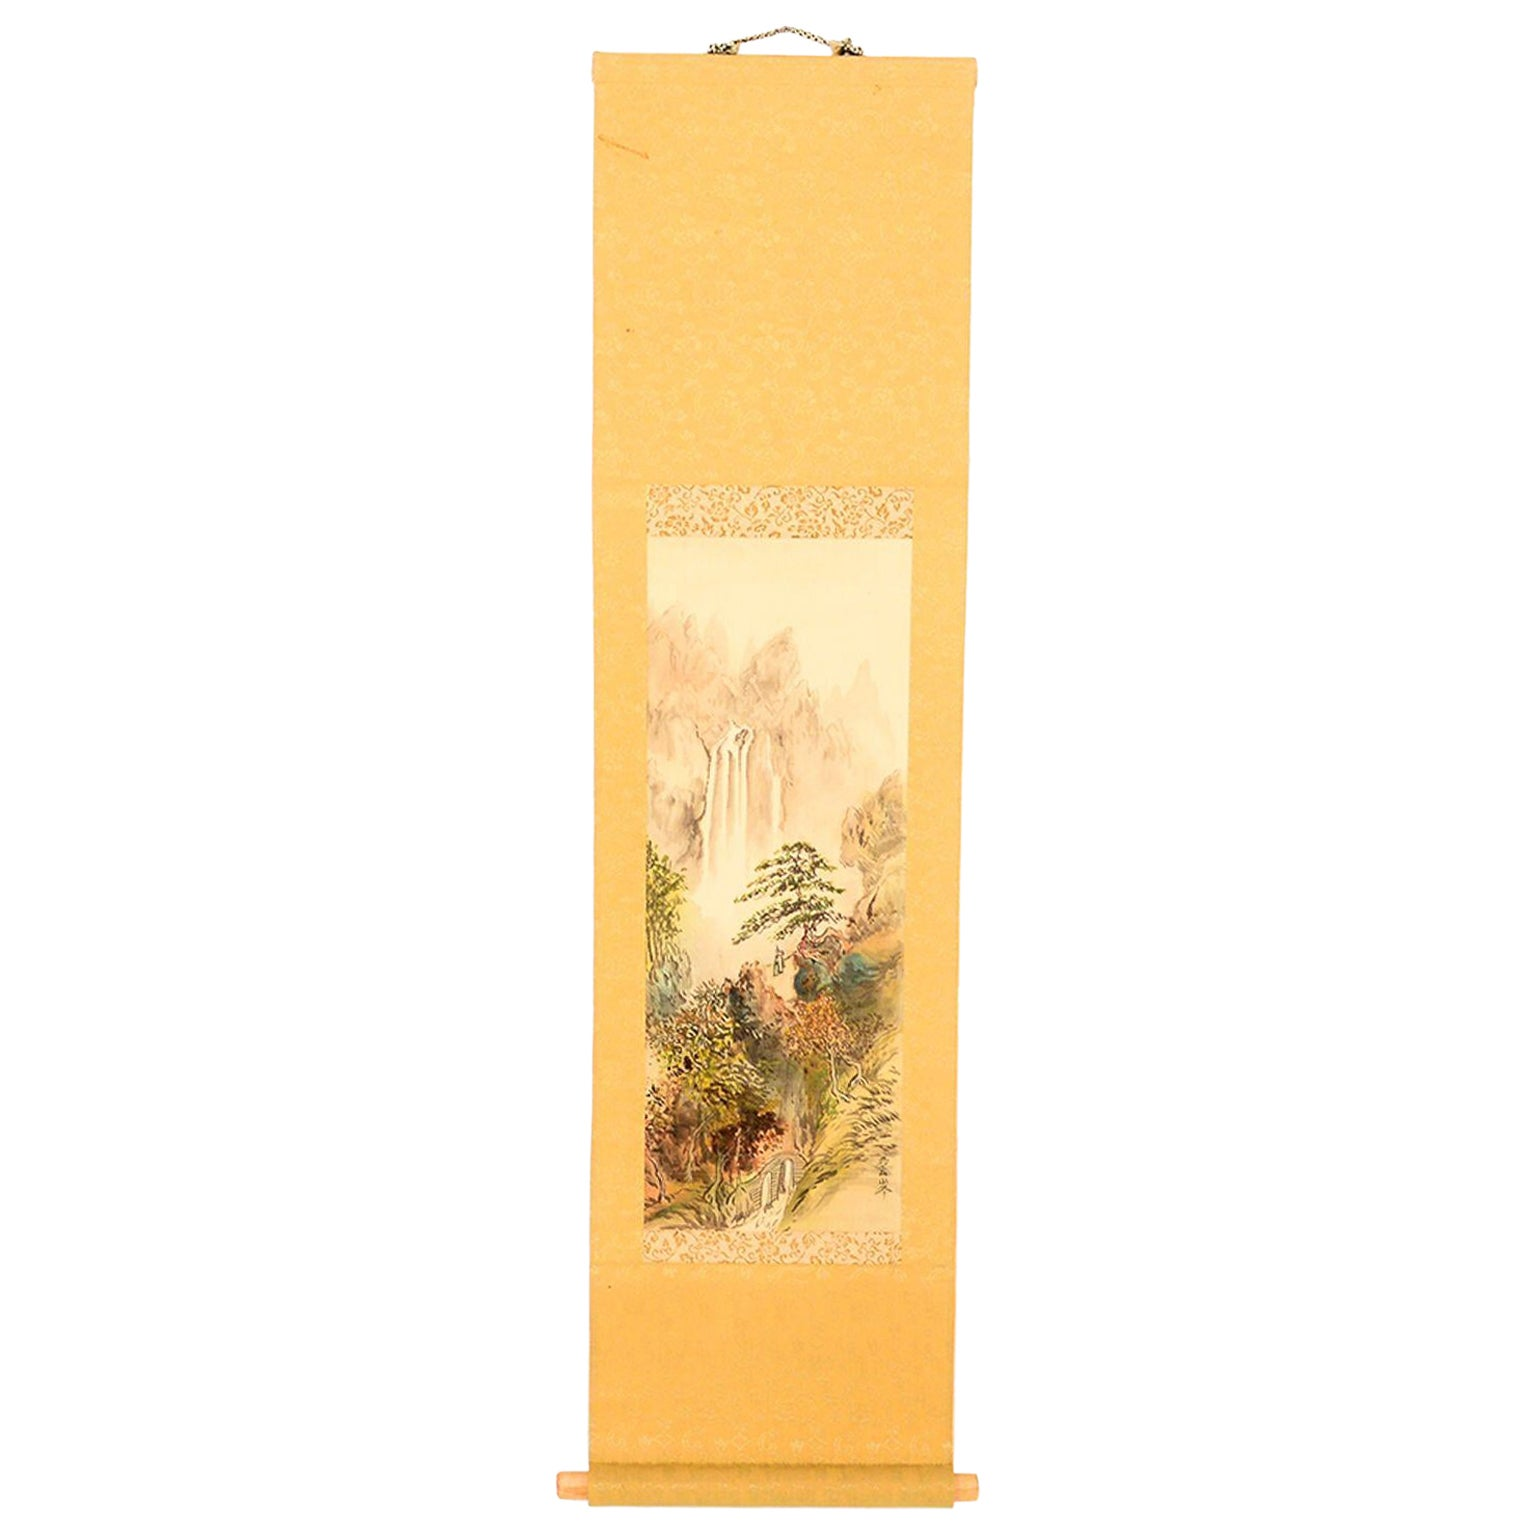 Vintage Chinese Silk Landscape Scroll Wall Art Hanging Decor 1